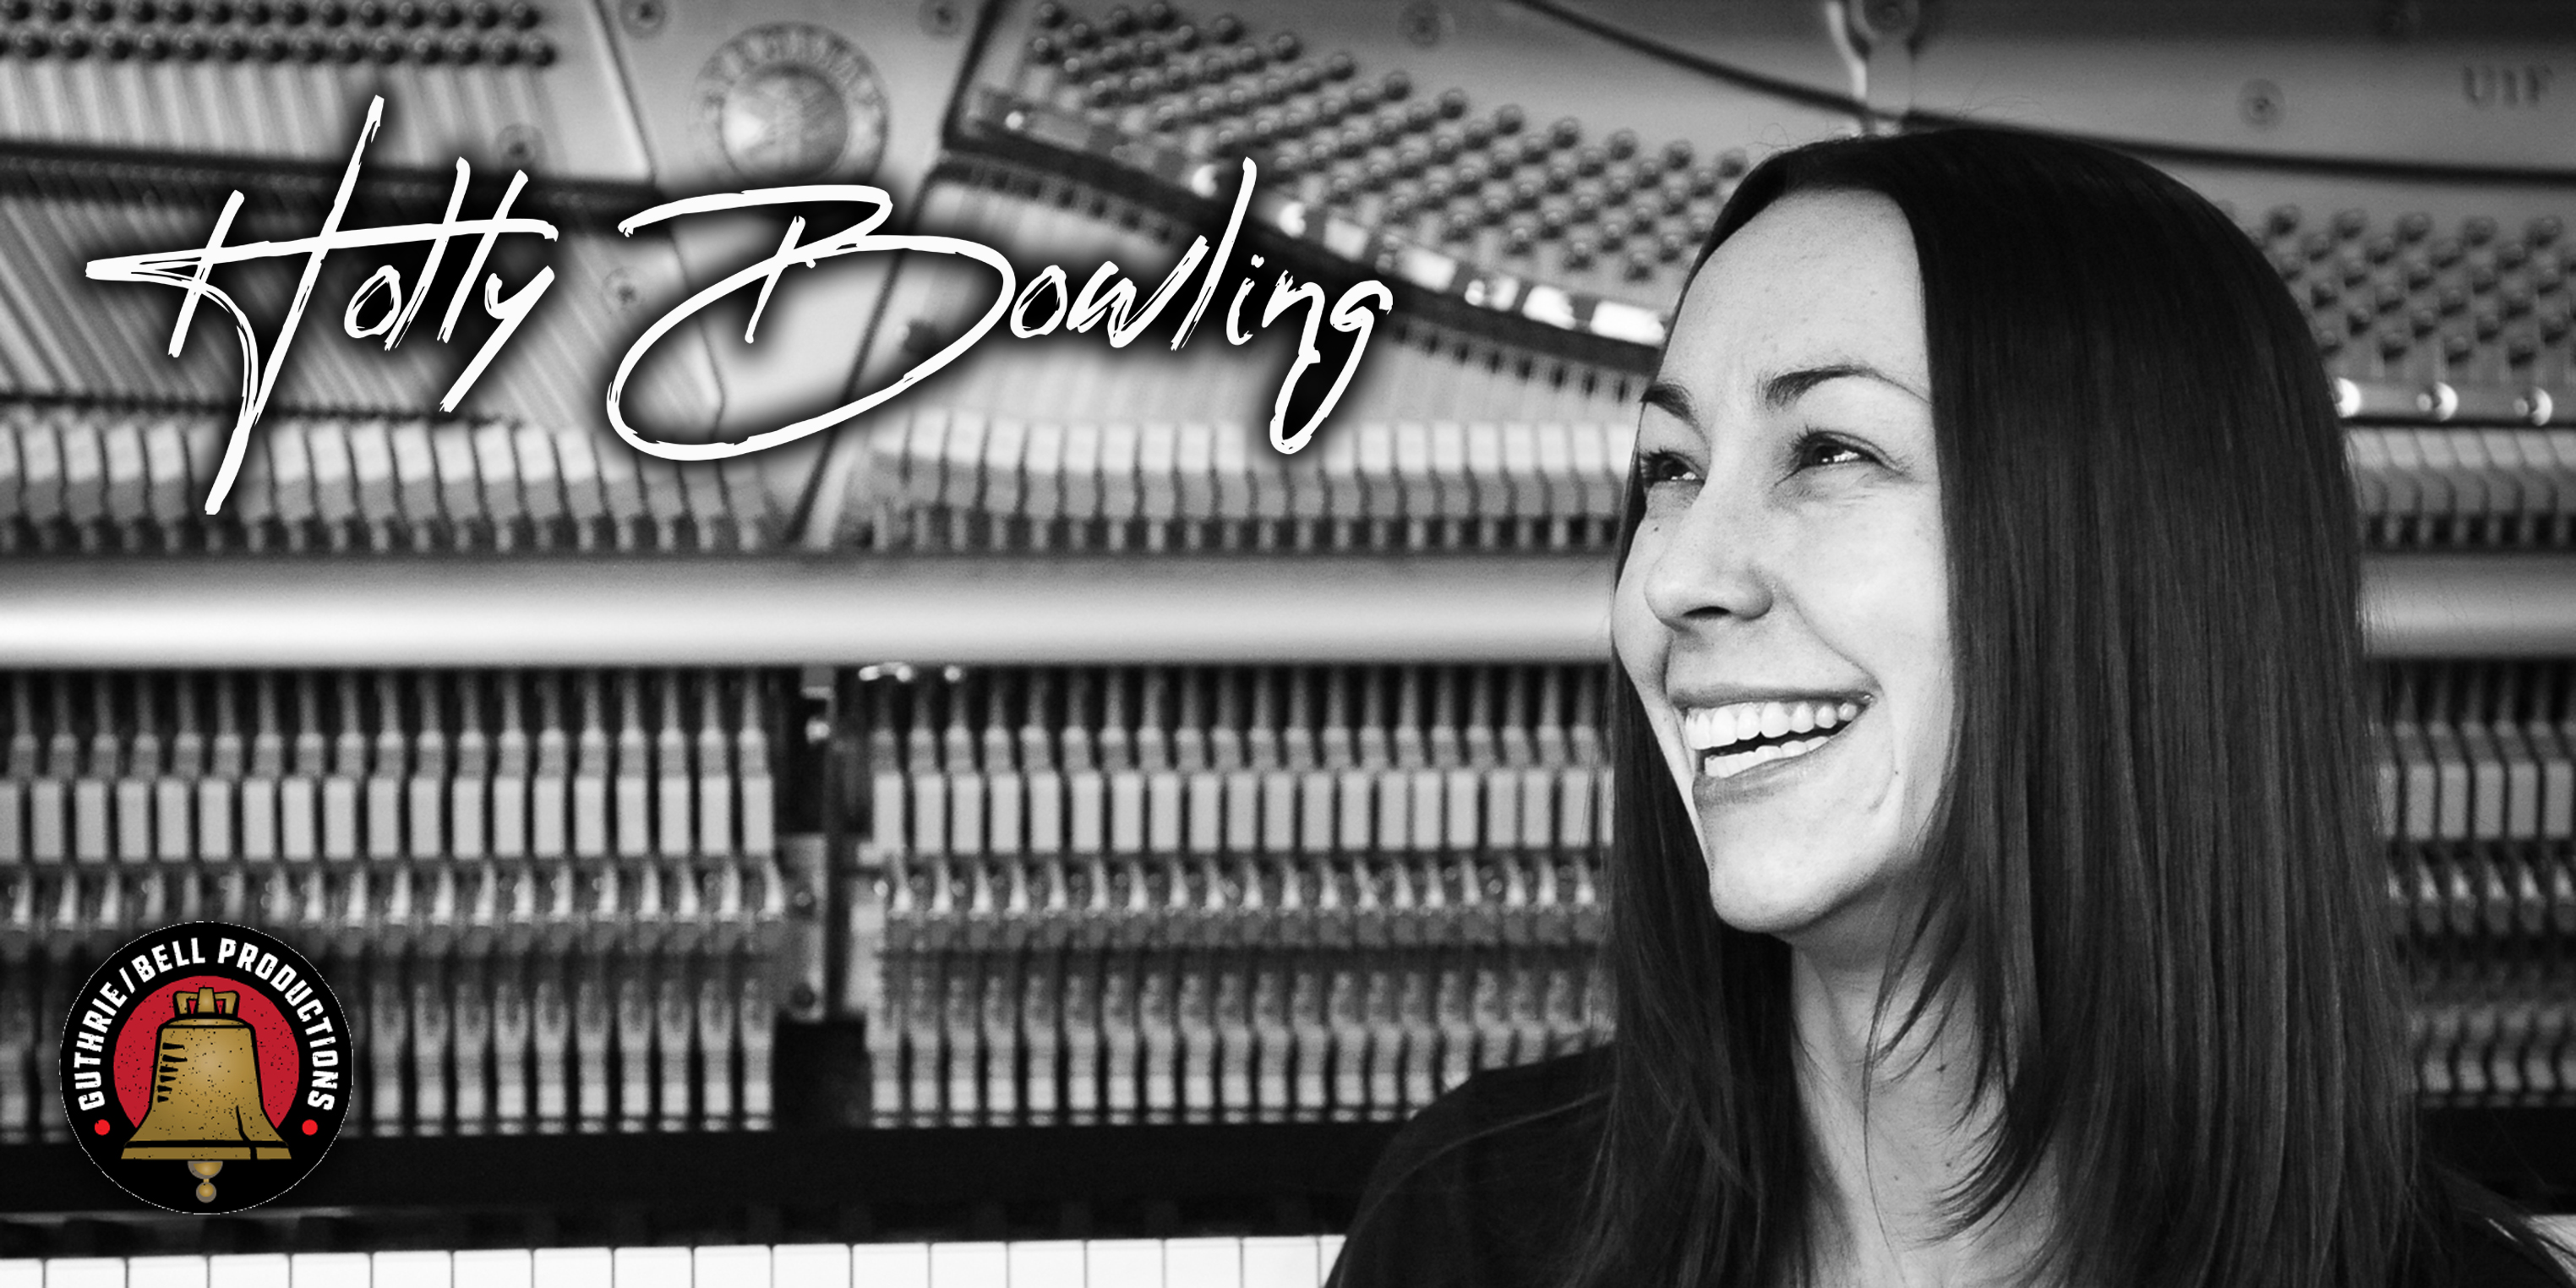 An Evening with Holly Bowling